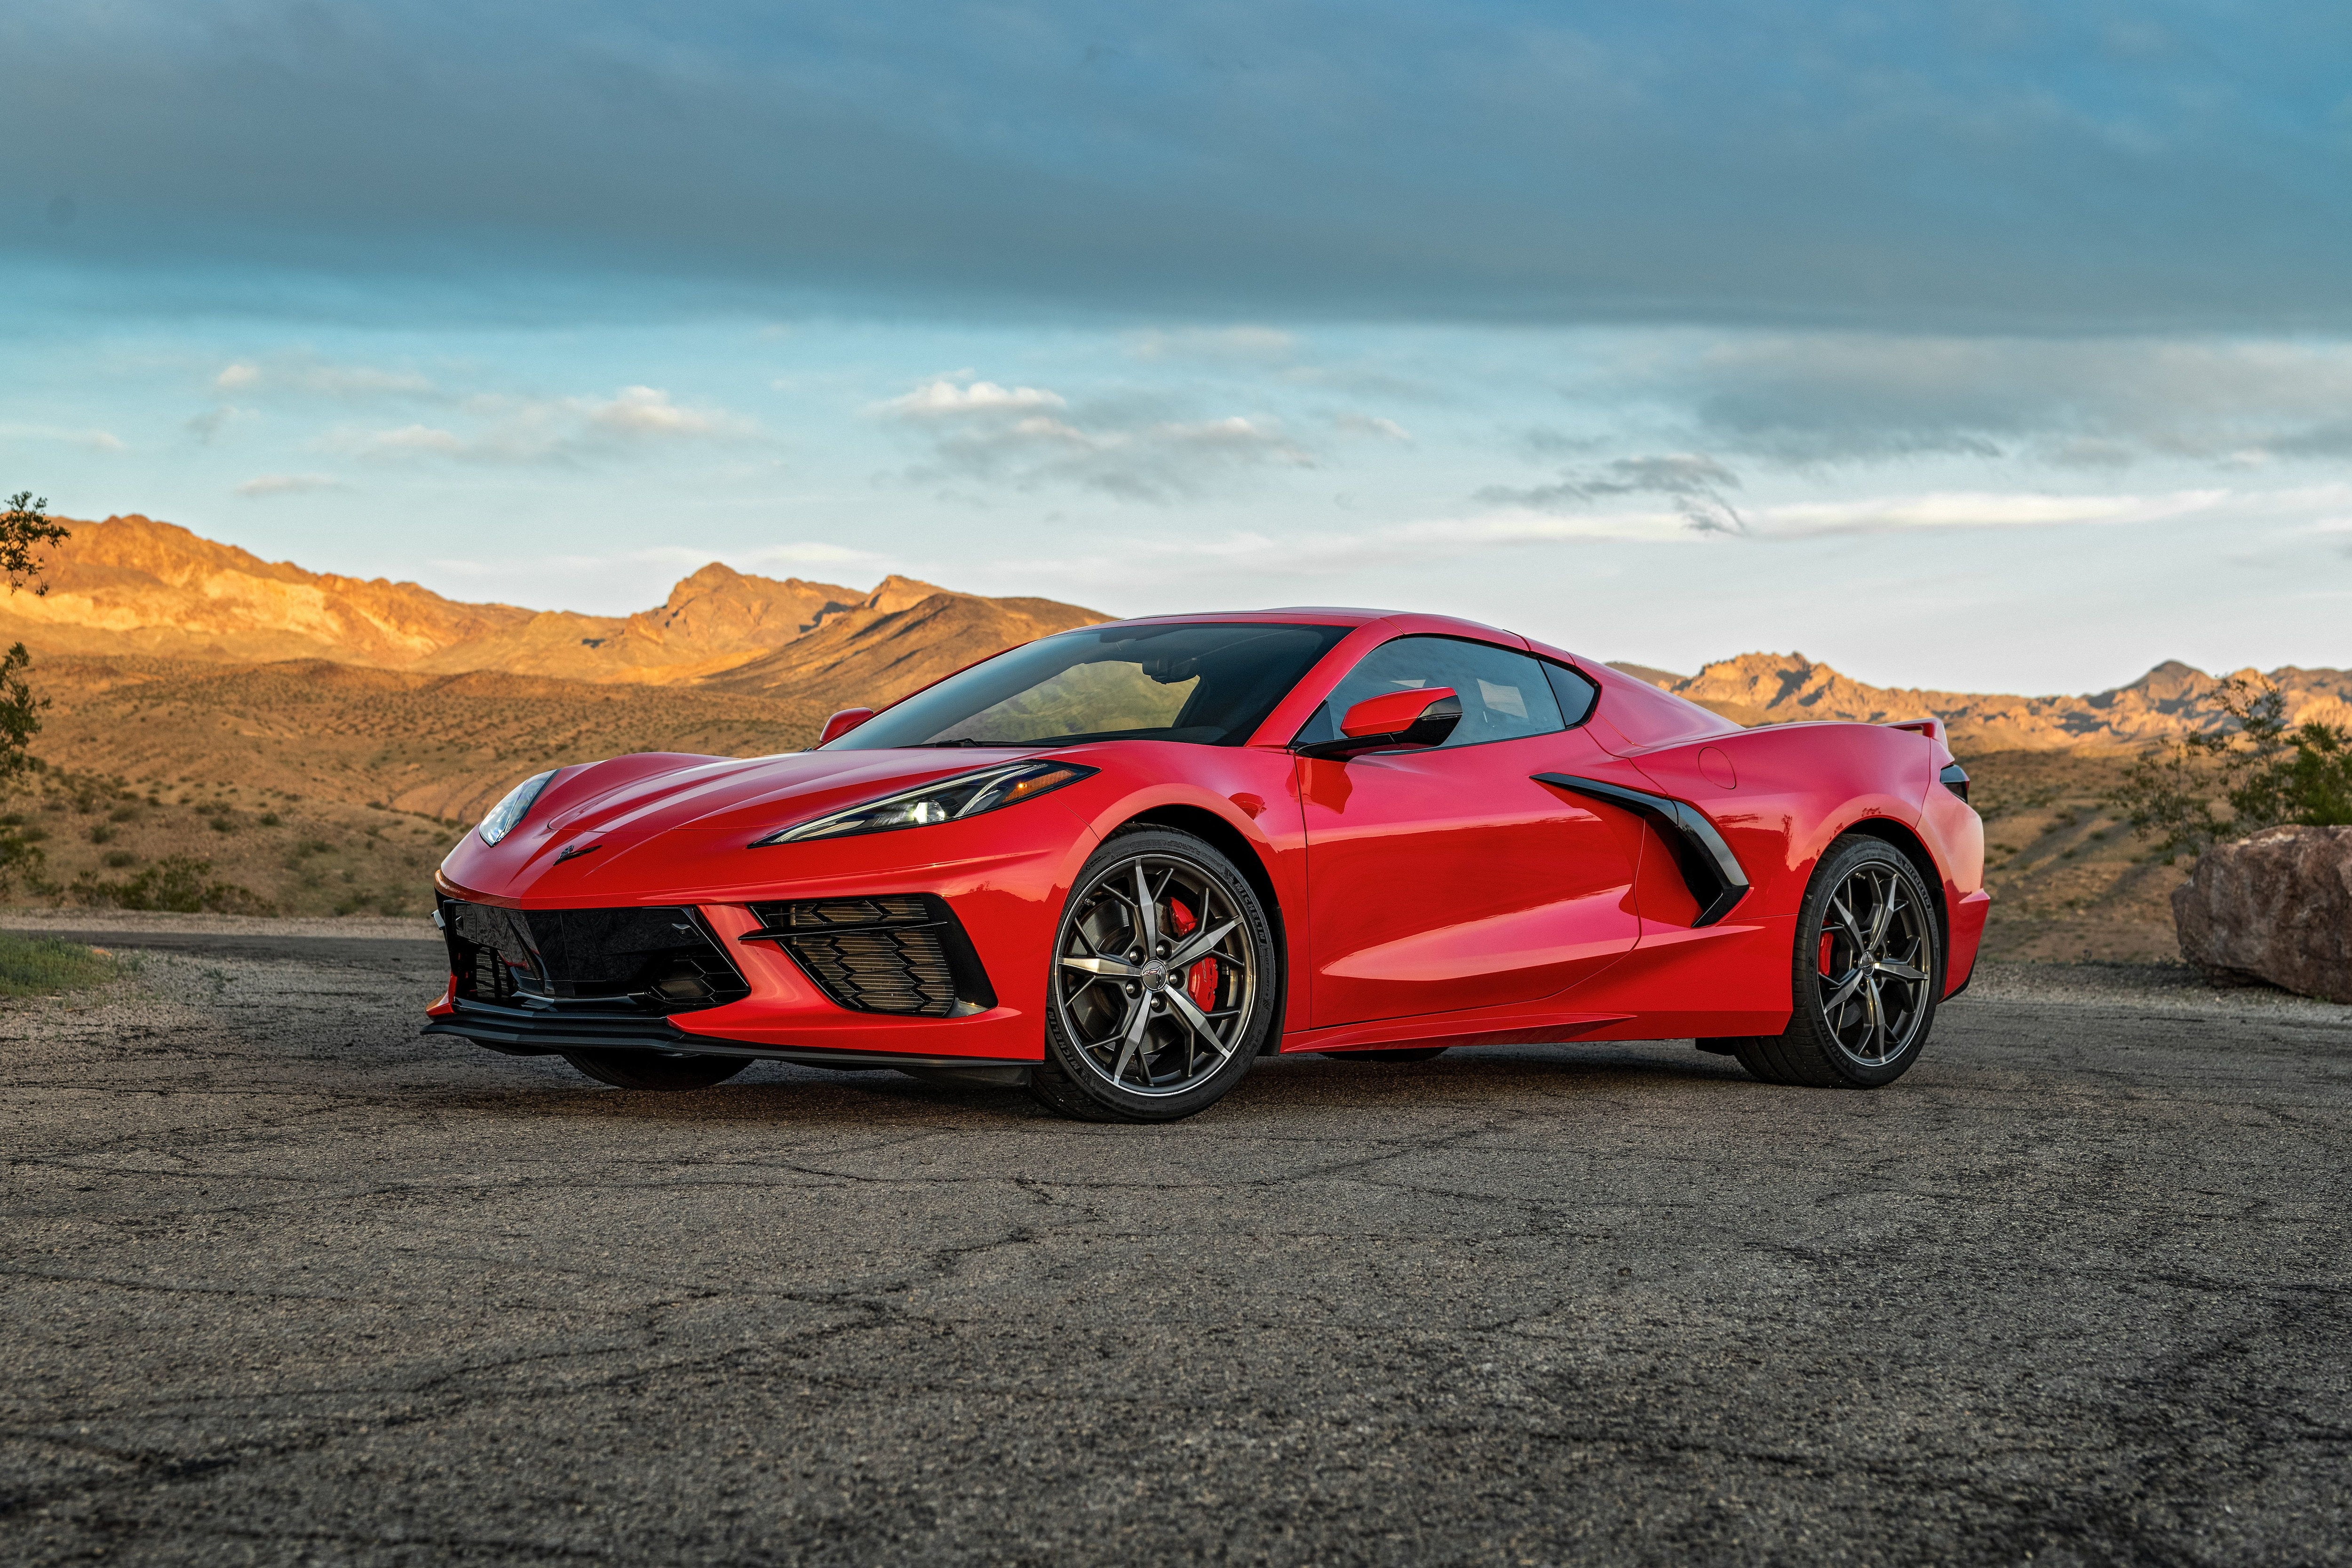 Review The 2020 Corvette Looks And Drives Like A Ferrari For A Fraction Of The Price The Globe And Mail